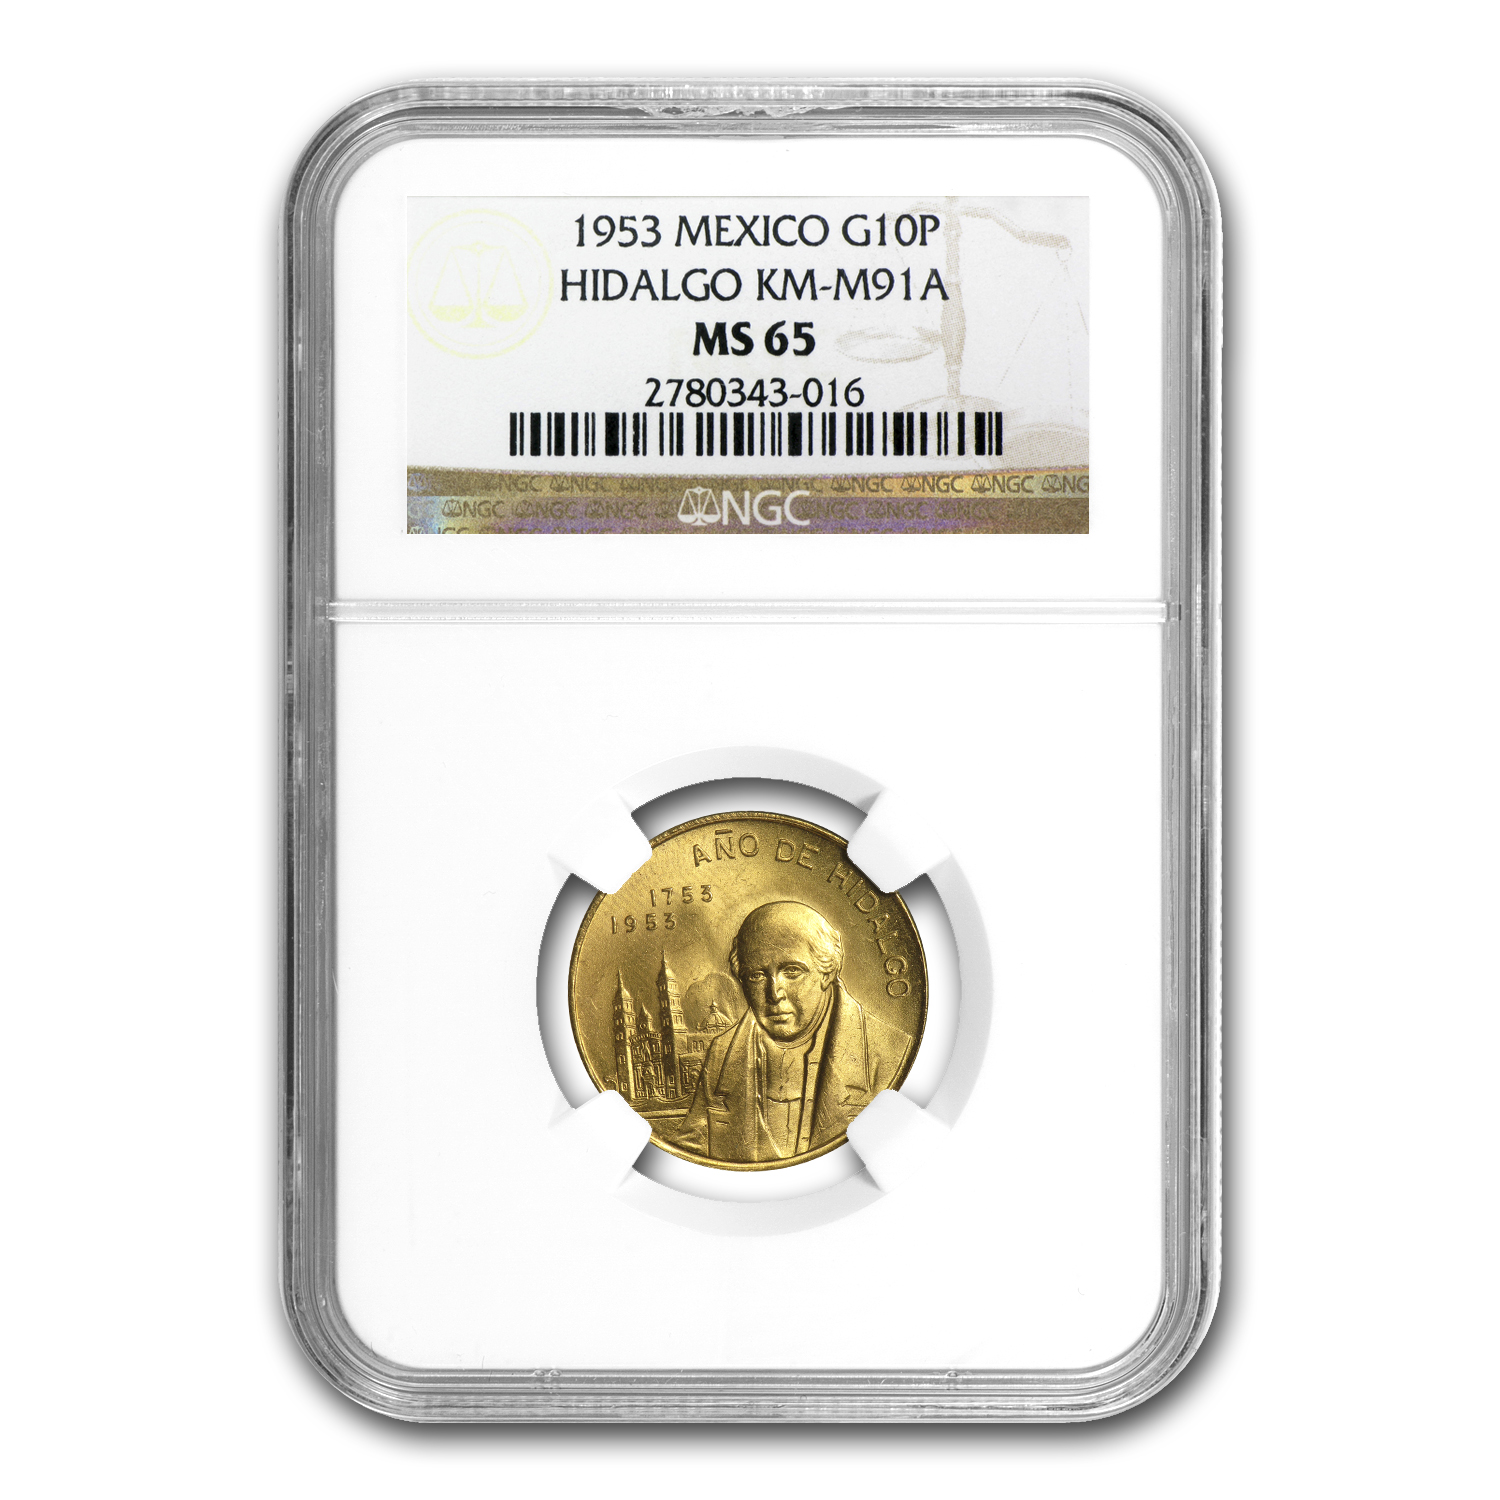 1953 Mexico Year of Hidalgo Gold Medal MS-65 NGC